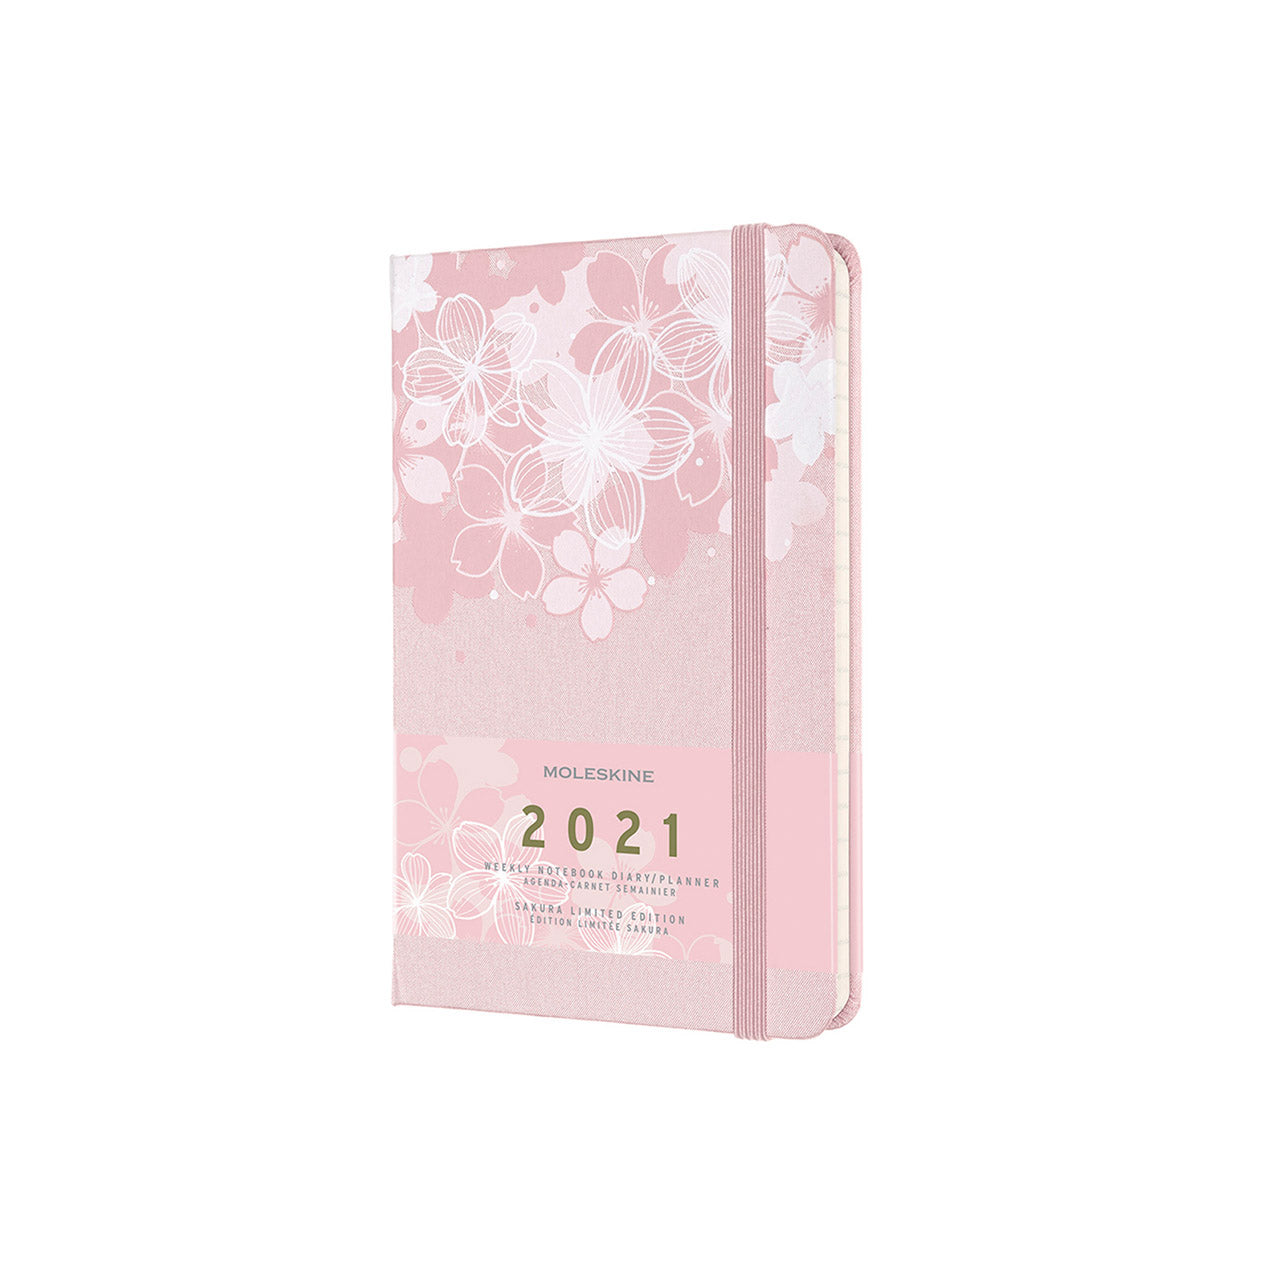 Moleskine - Limited Edition Sakura Notebook -  2021 12 Month Weekly - Large